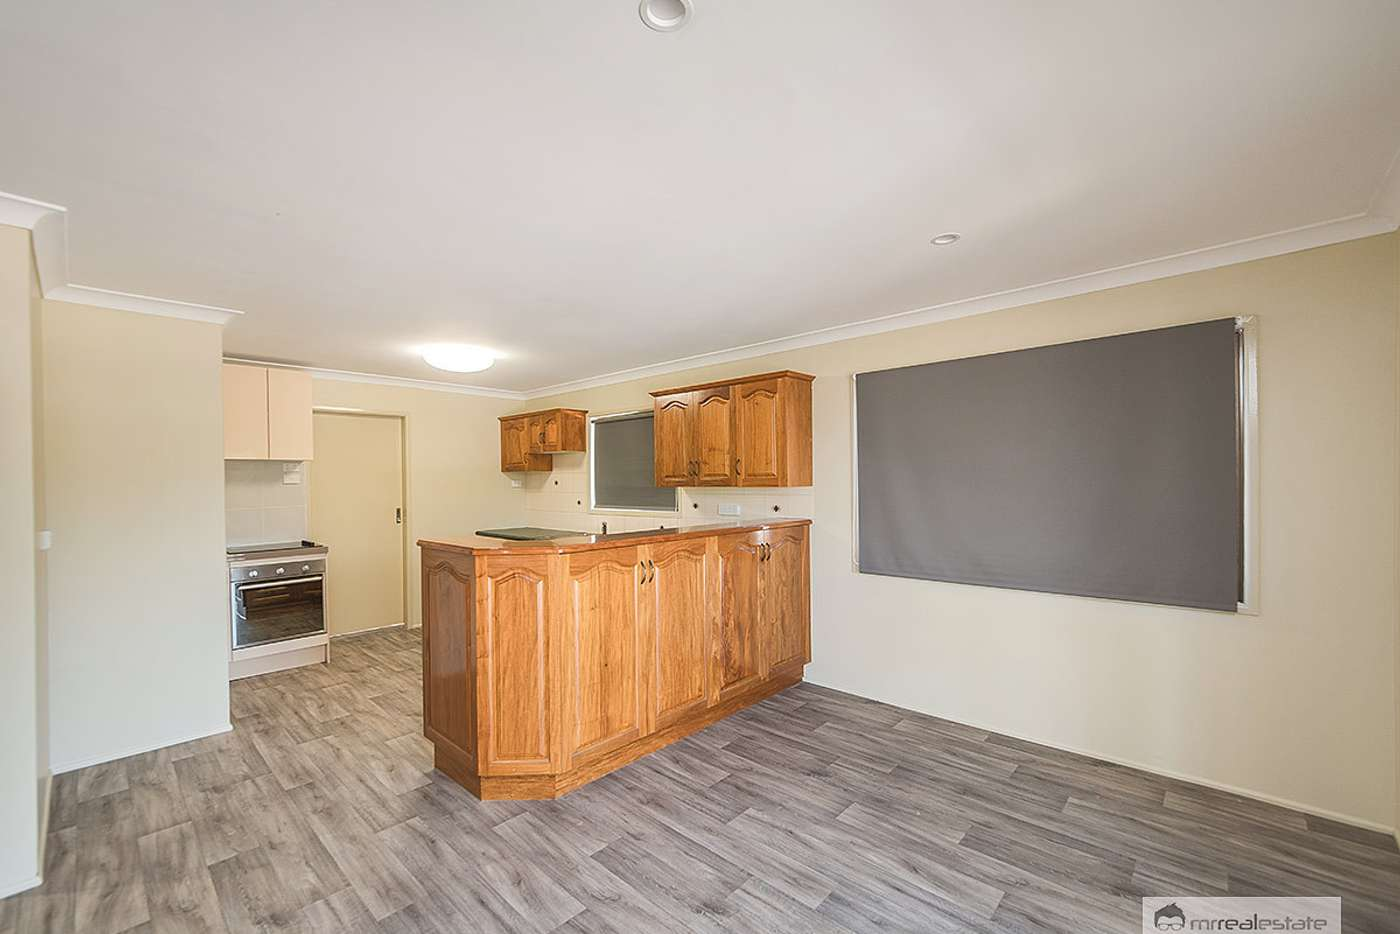 Fifth view of Homely house listing, 2 Dinsdale Street, Norman Gardens QLD 4701